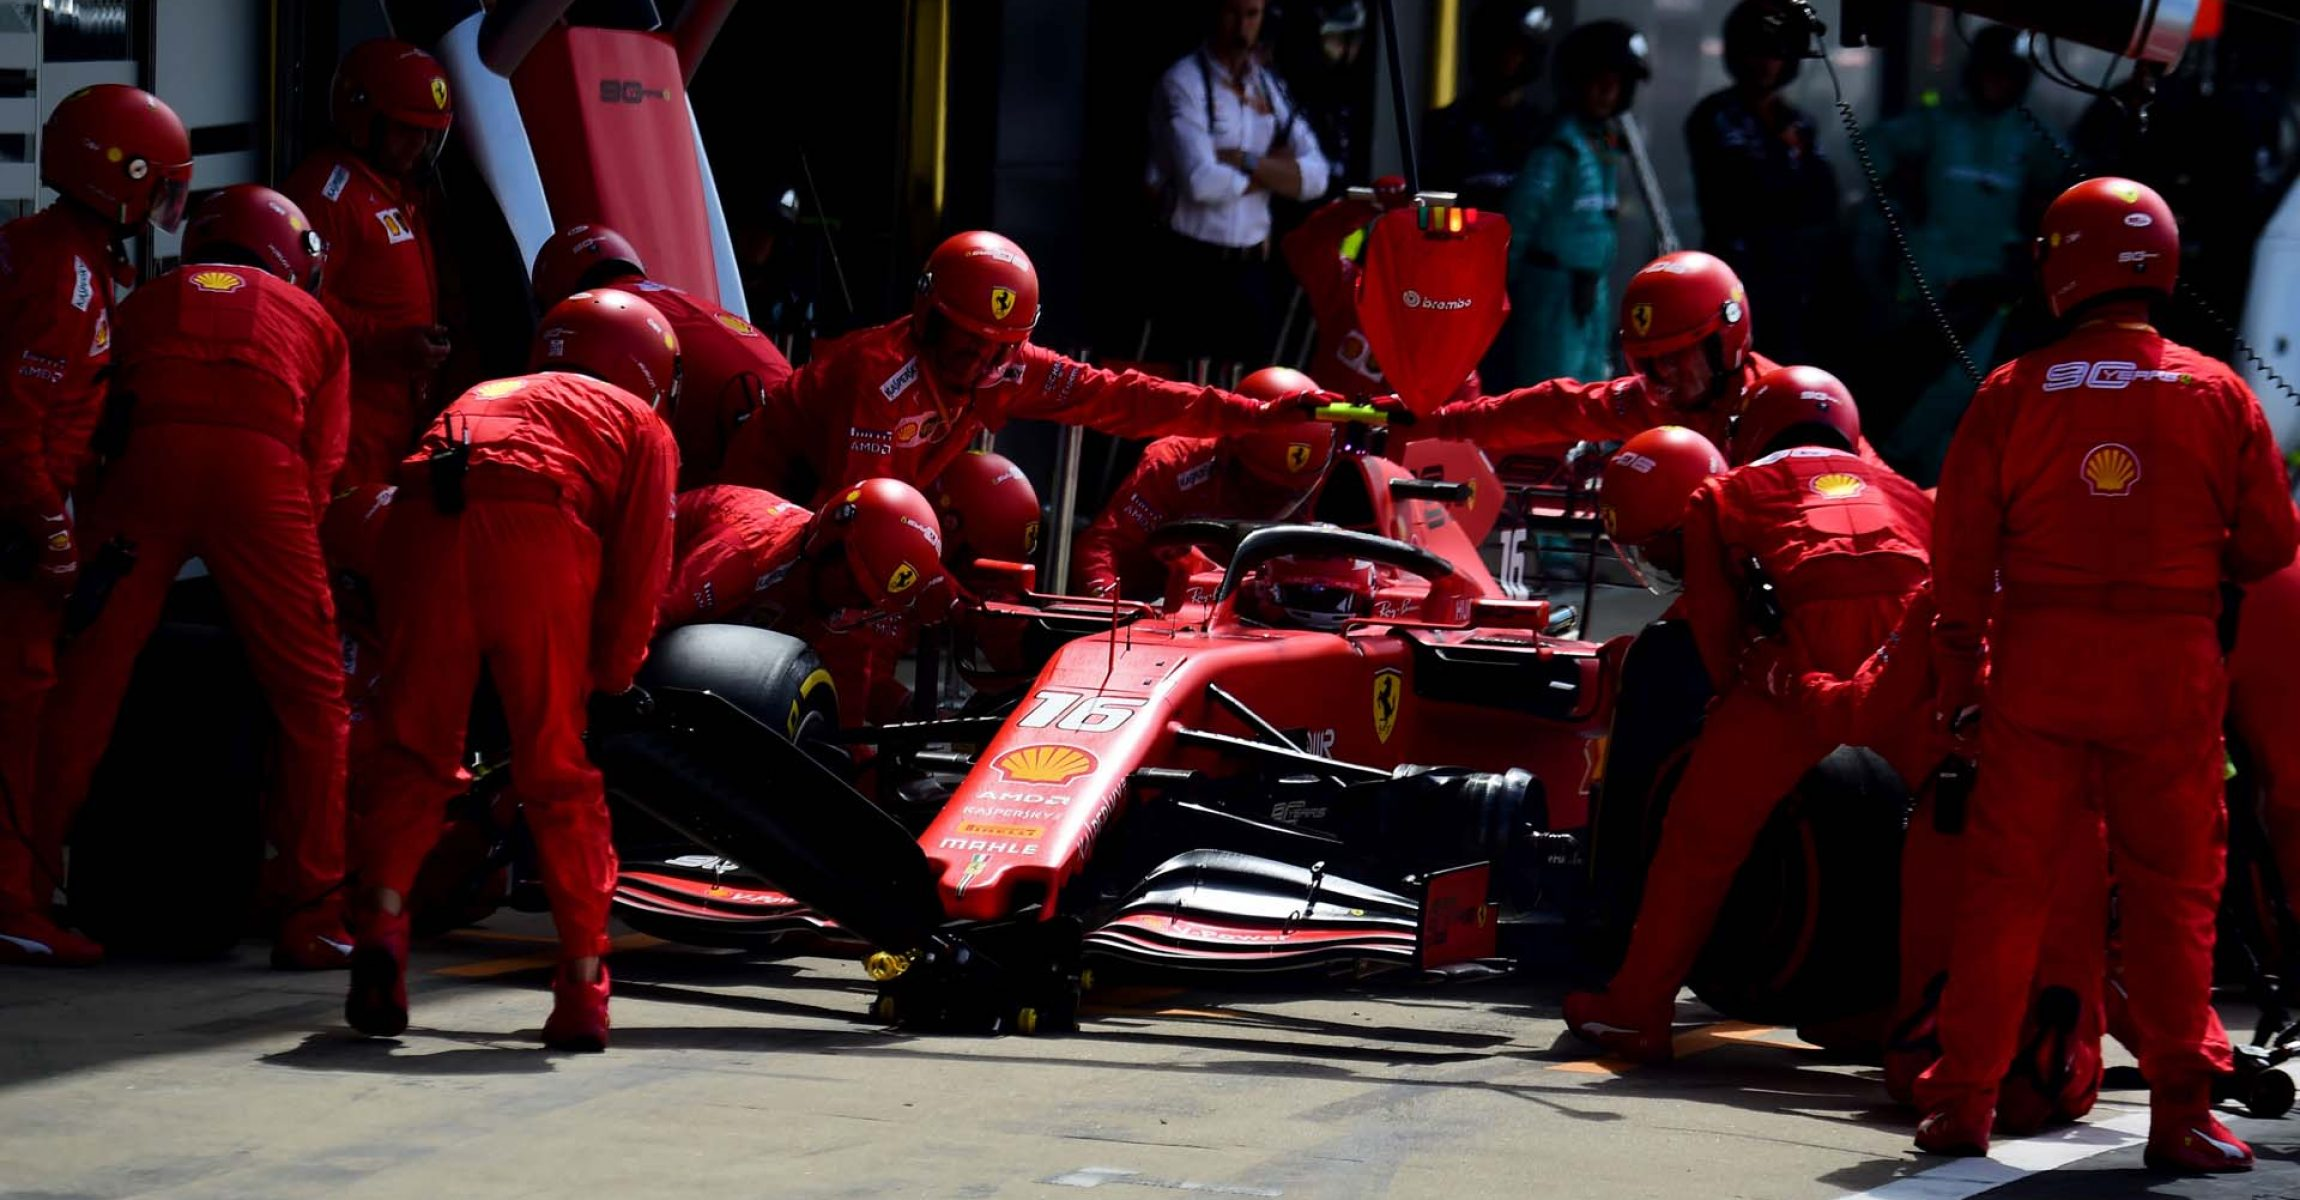 GP GRAN BRETAGNA F1/2019 - DOMENICA 14/07/2019 credit: @Scuderia Ferrari Press Office Charles Leclerc pitstop